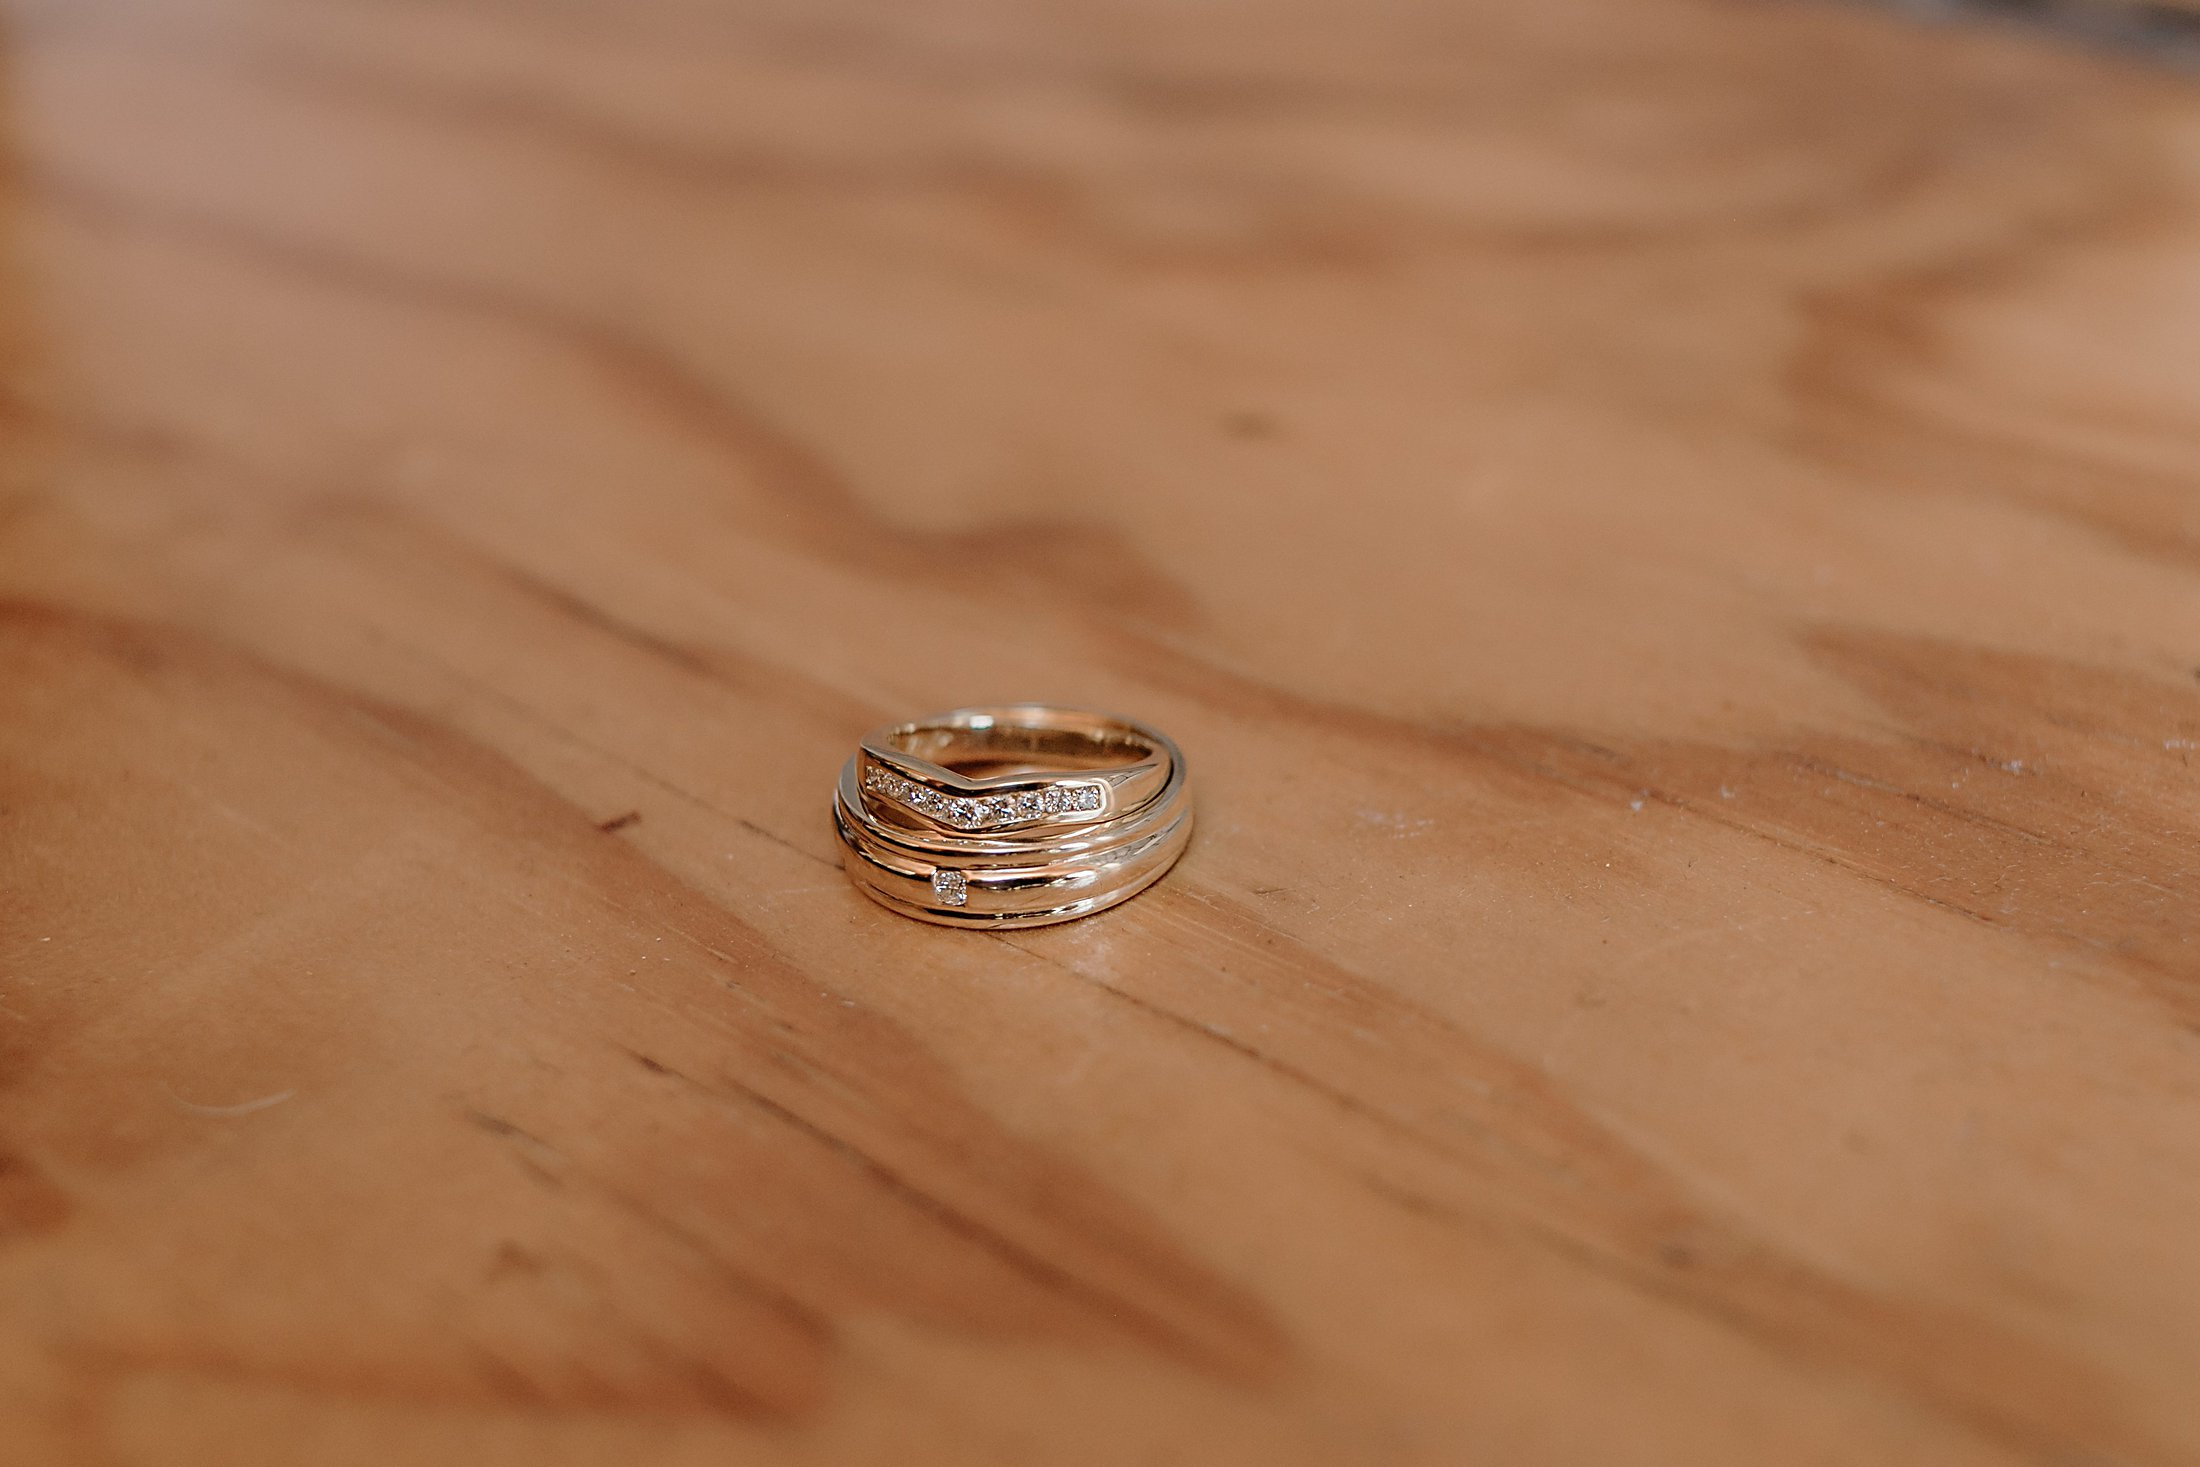 Bride and grooms wedding bands with diamonds